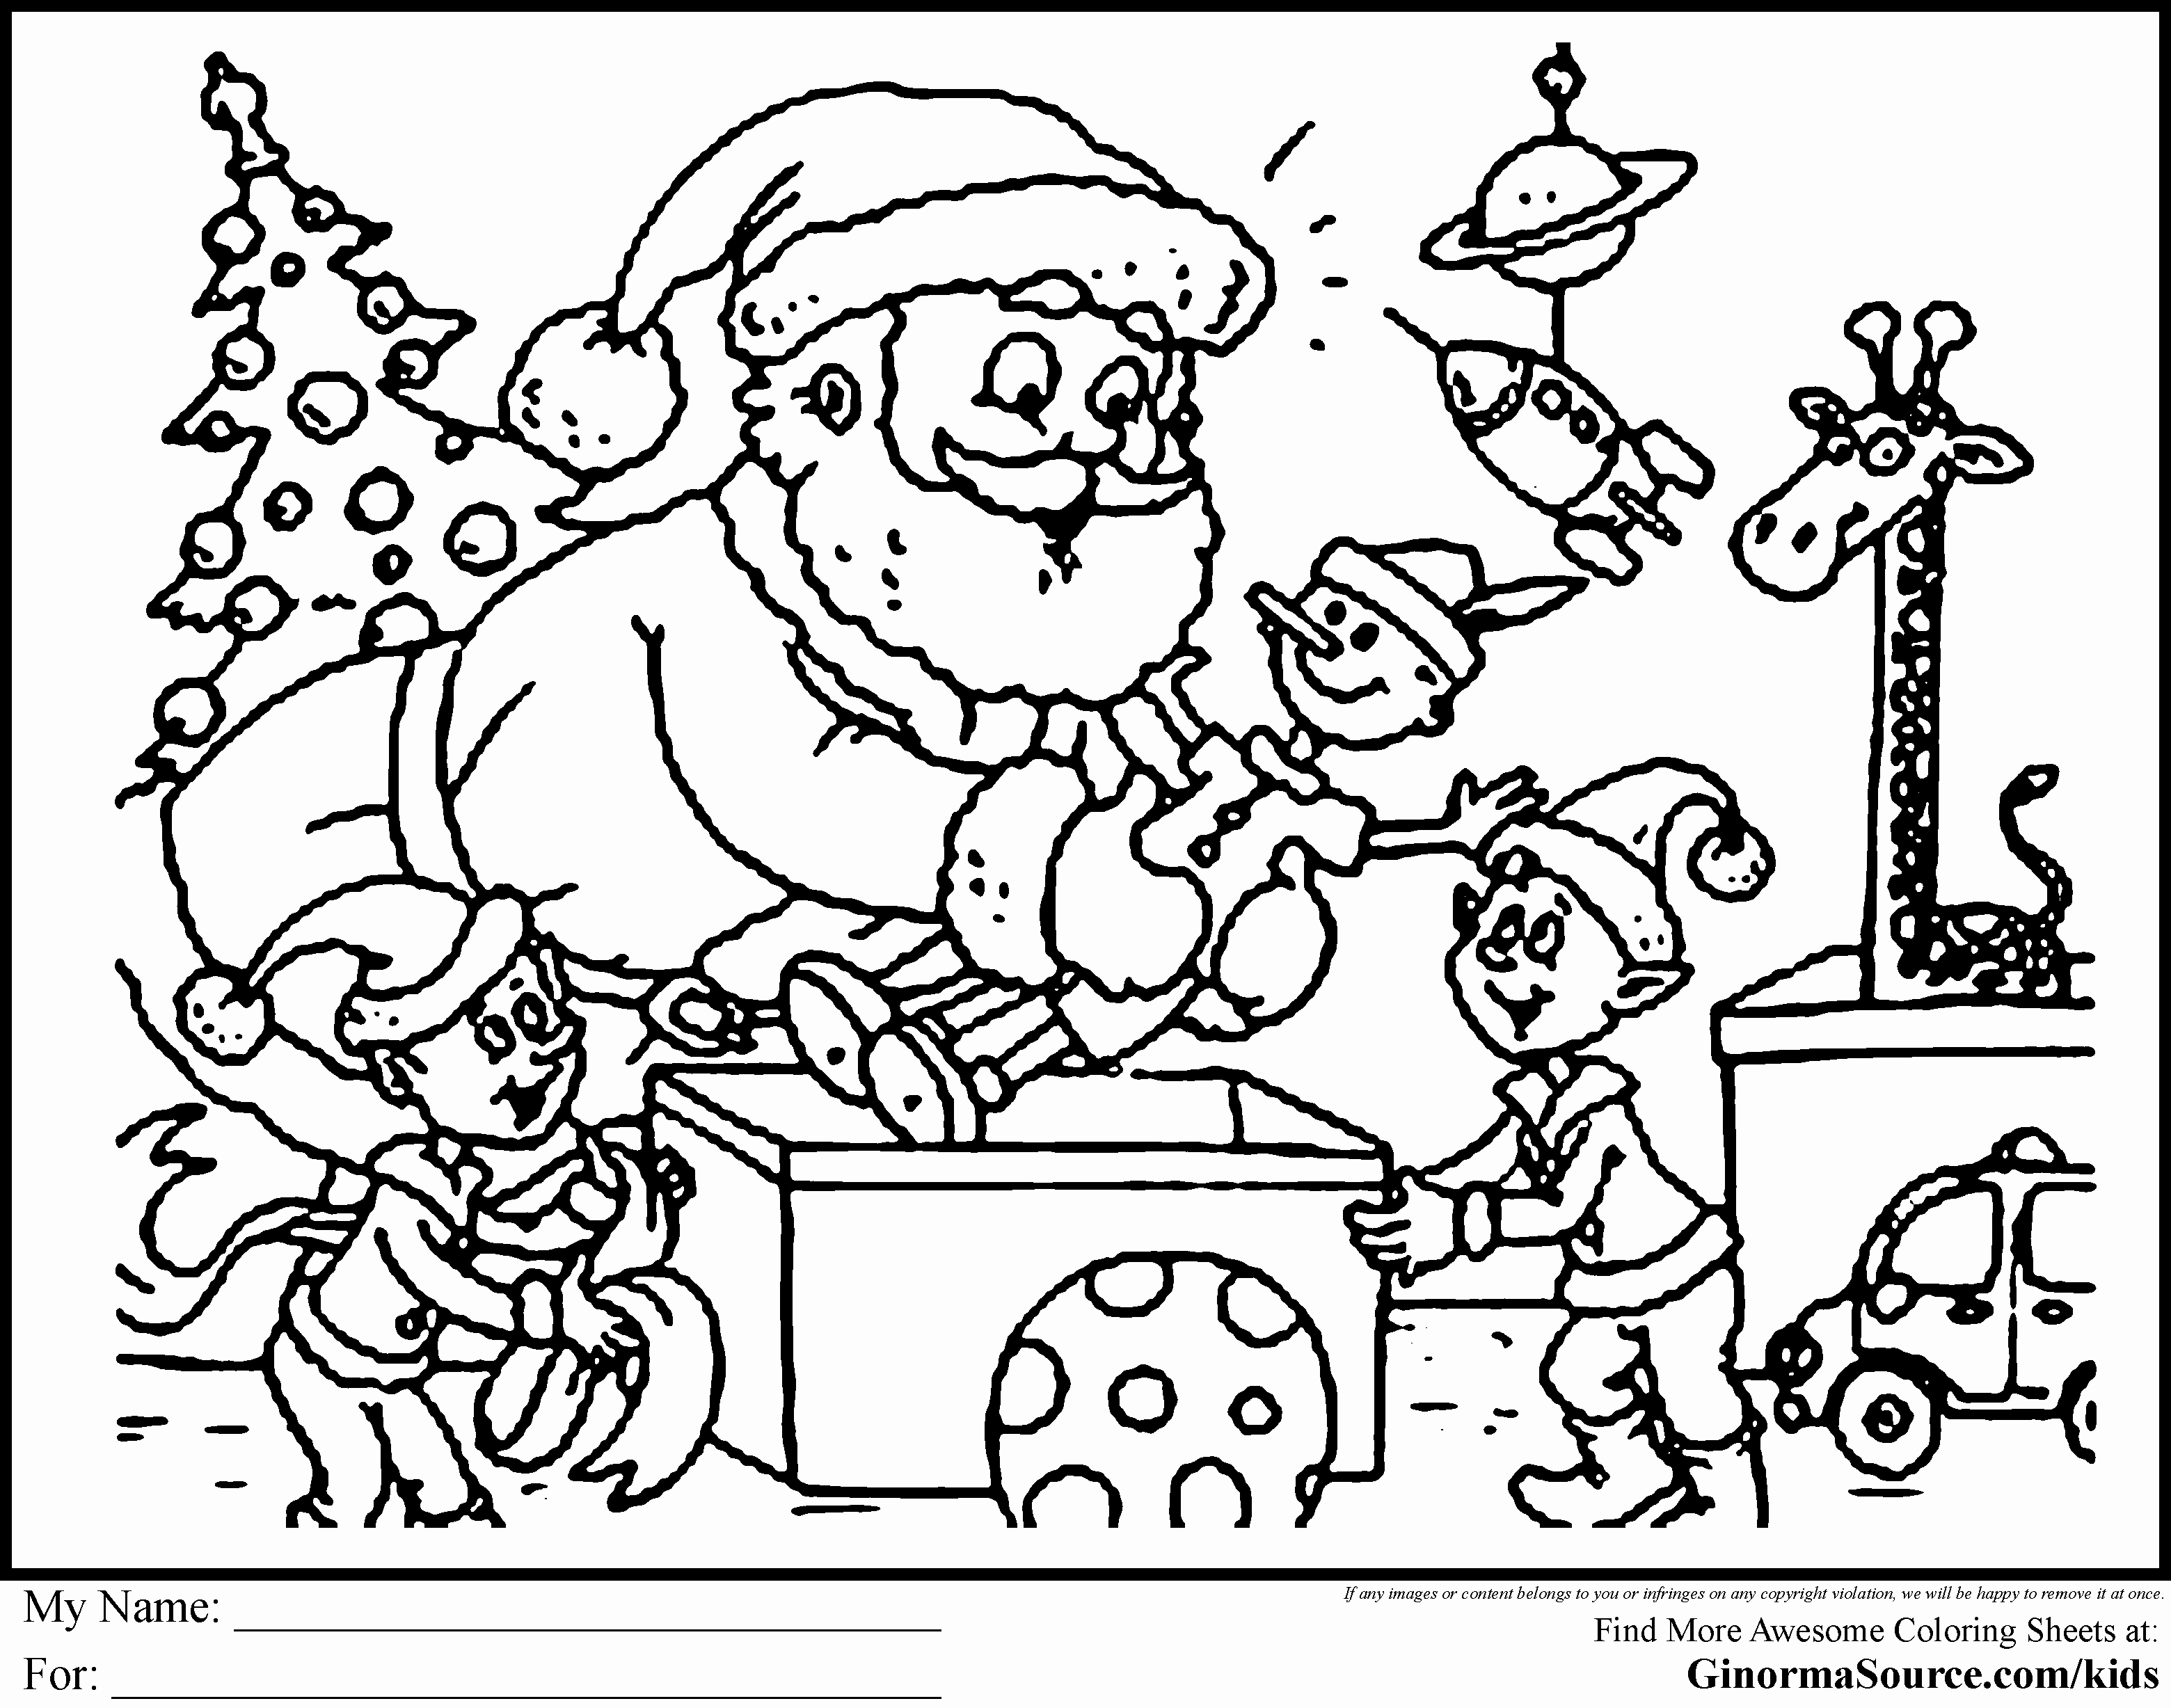 Print My Name Coloring Pages At Getcolorings